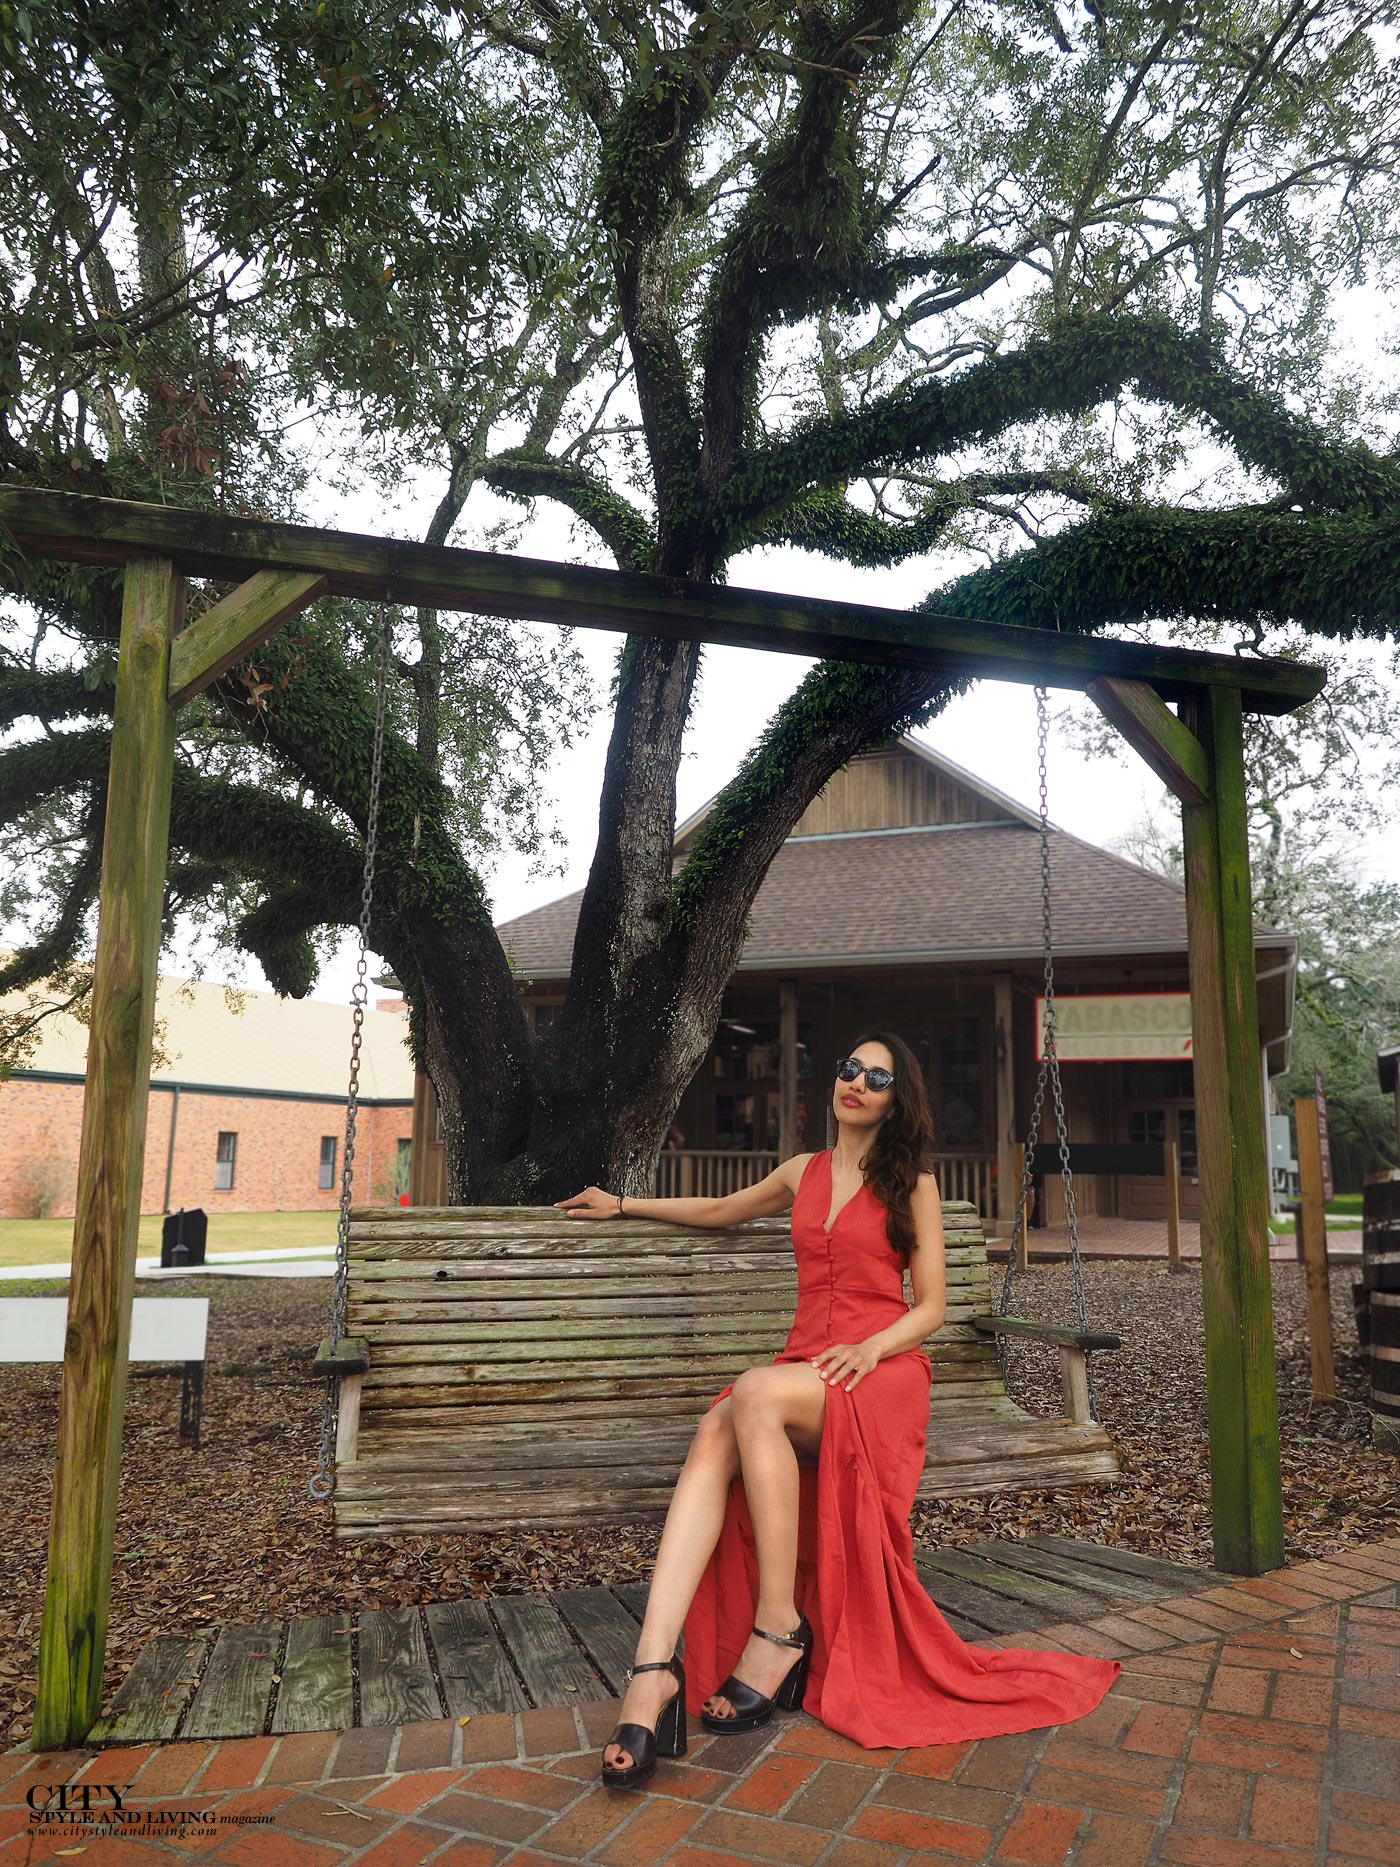 City style and living magazine The Editors Notebook style fashion blogger Shivana Maharaj New Orleans French Quarter Orange Dress Avery Island Tabasco